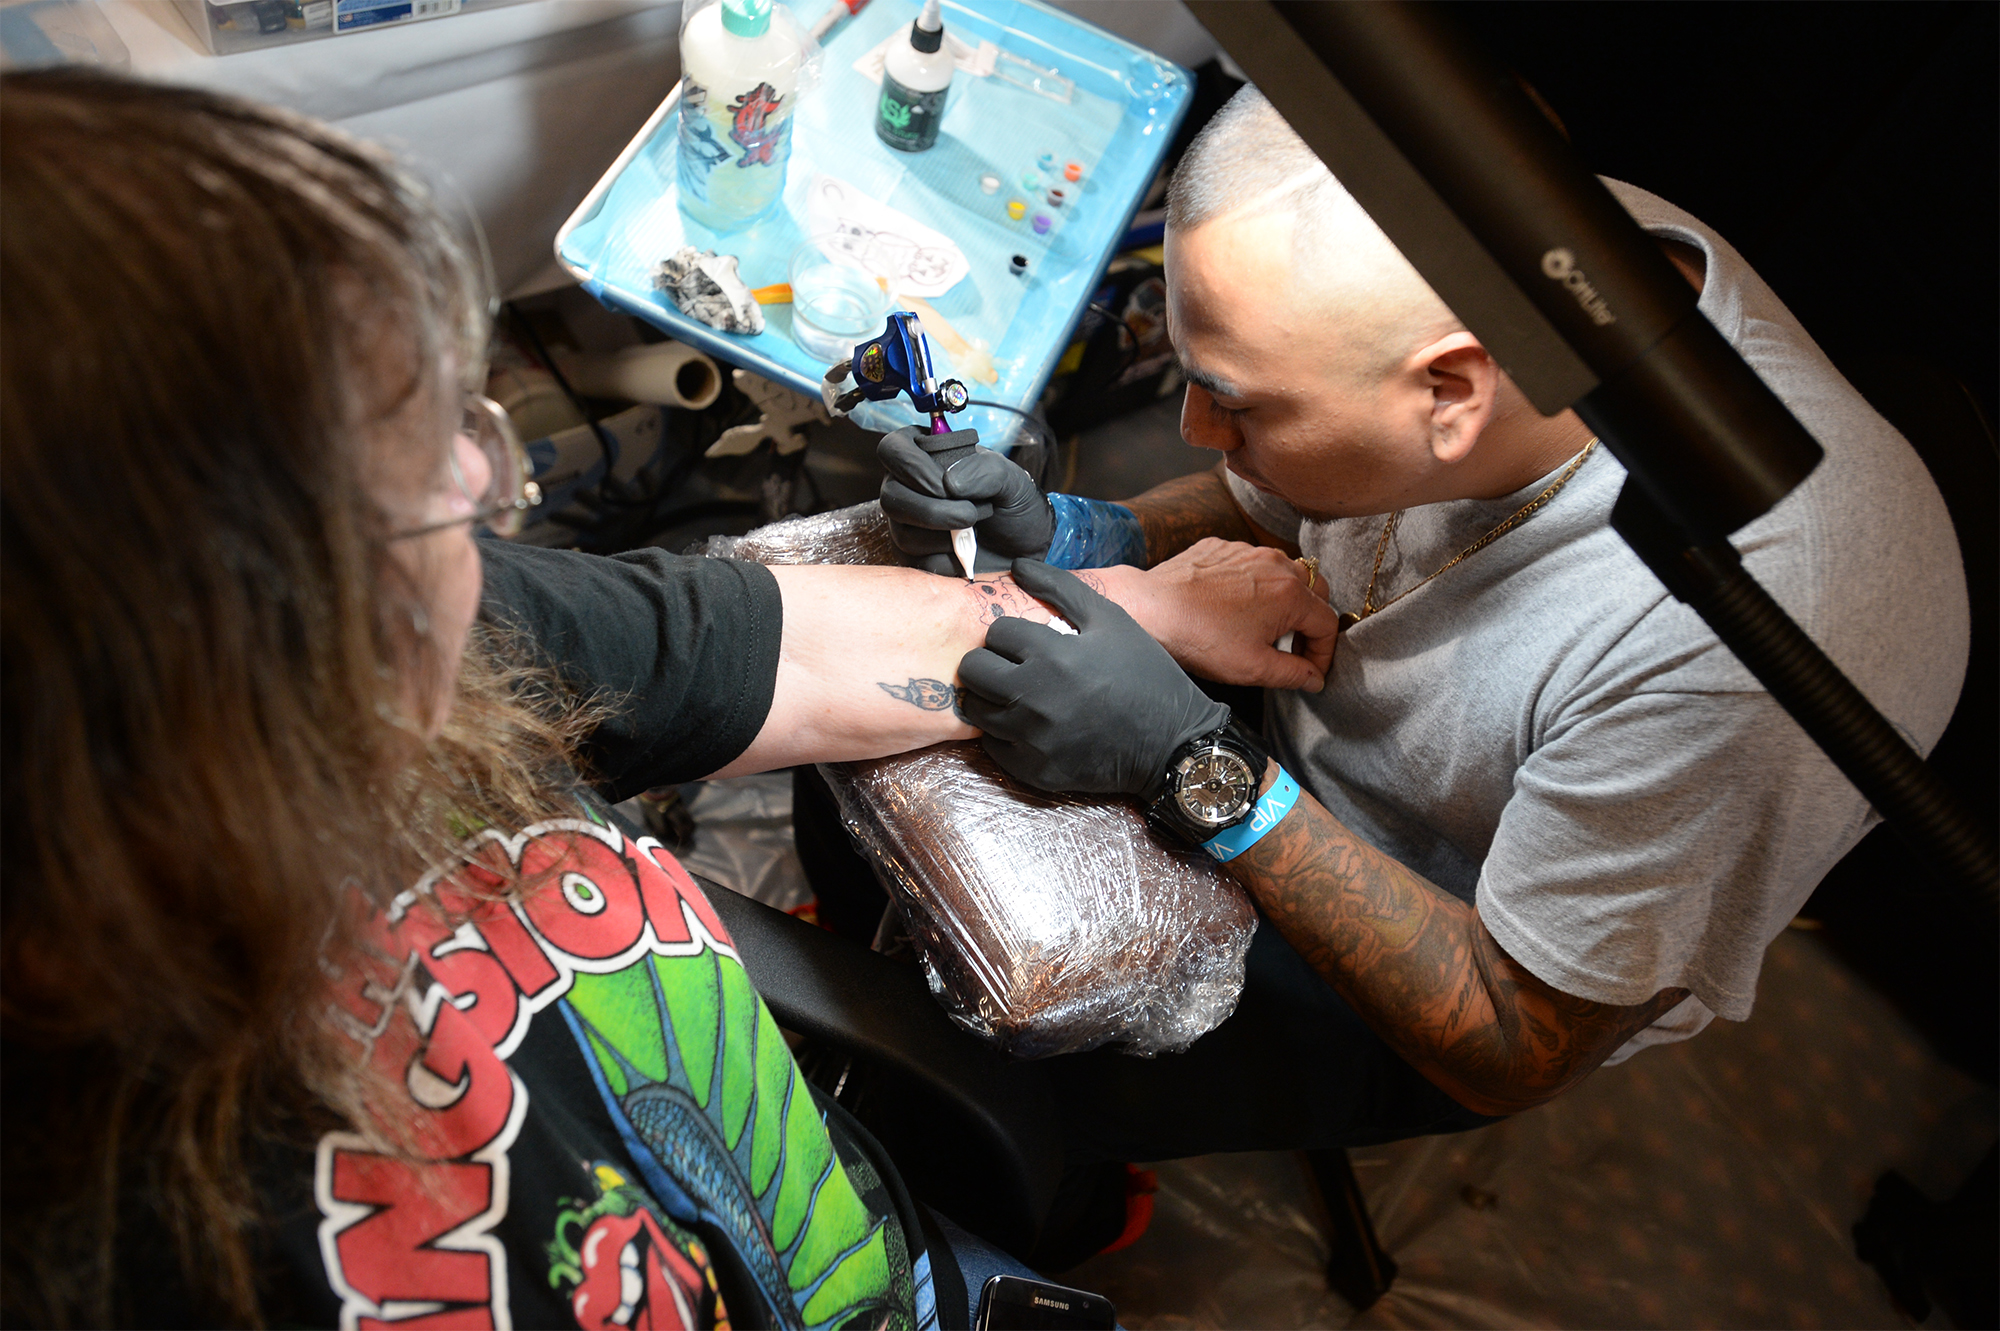 Inkmasters expo attracts beaumont tattoo enthusiasts for Houston tattoo expo